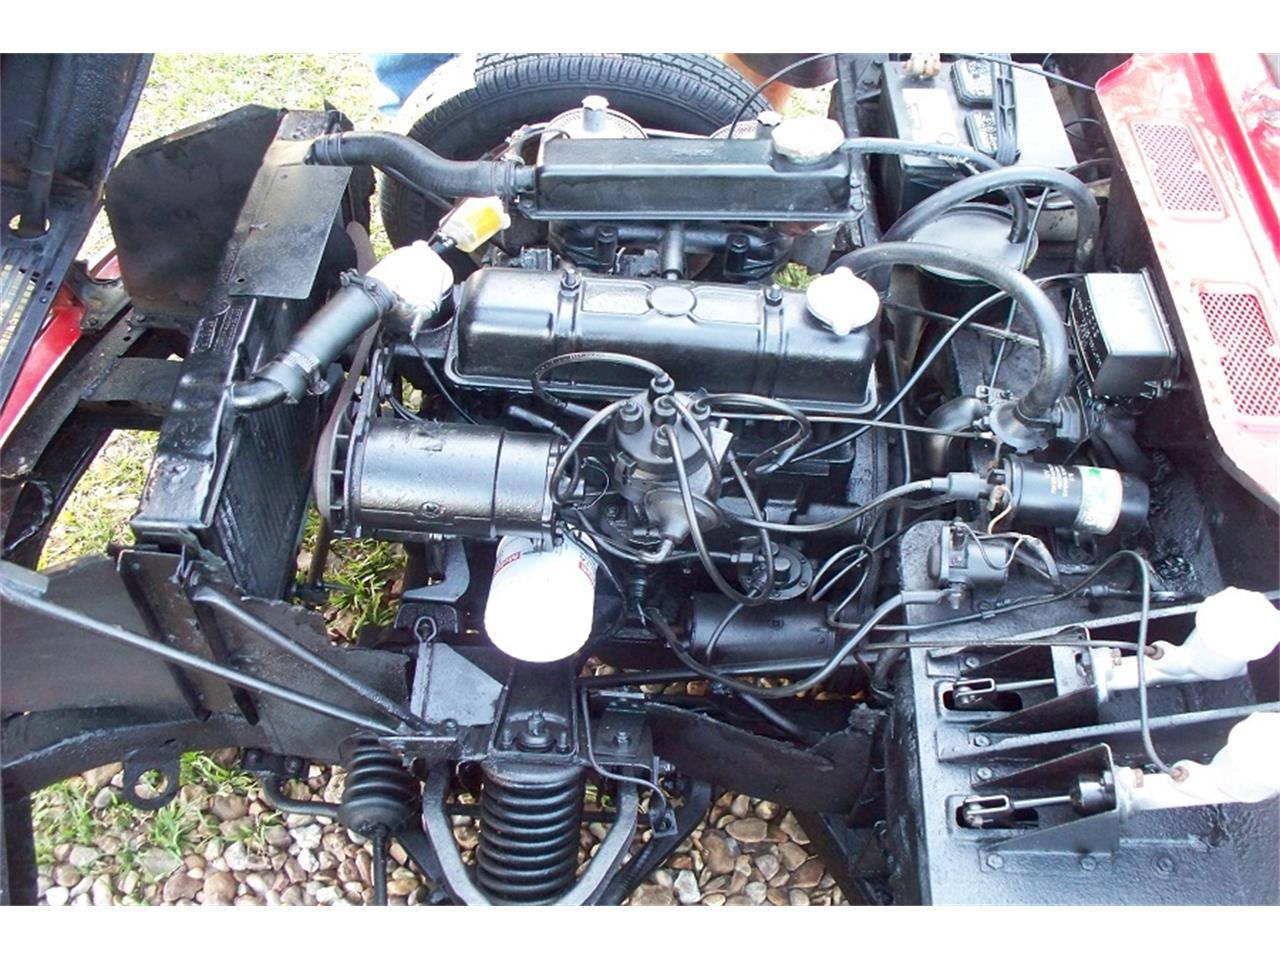 1964 Triumph Spitfire (CC-1207709) for sale in CYPRESS, Texas